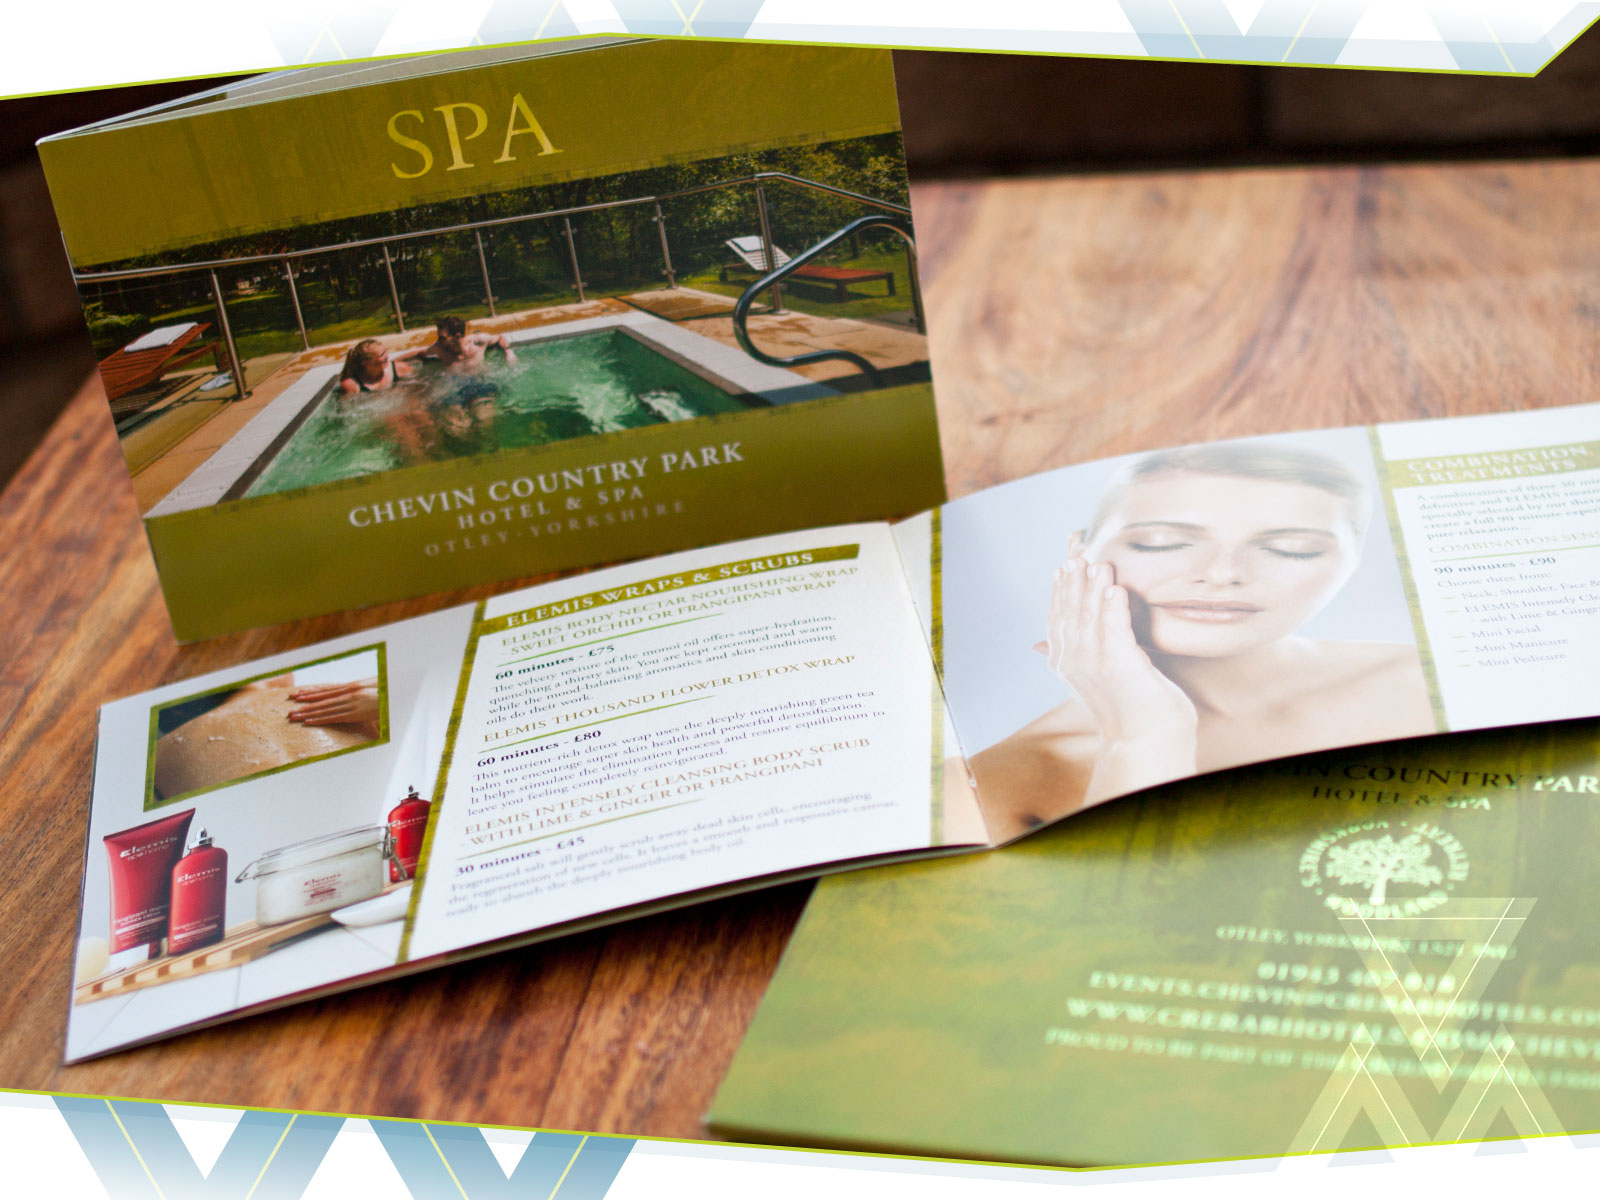 PRINT – Chevin Country Park Hotel & Spa – PETER MACDONALD